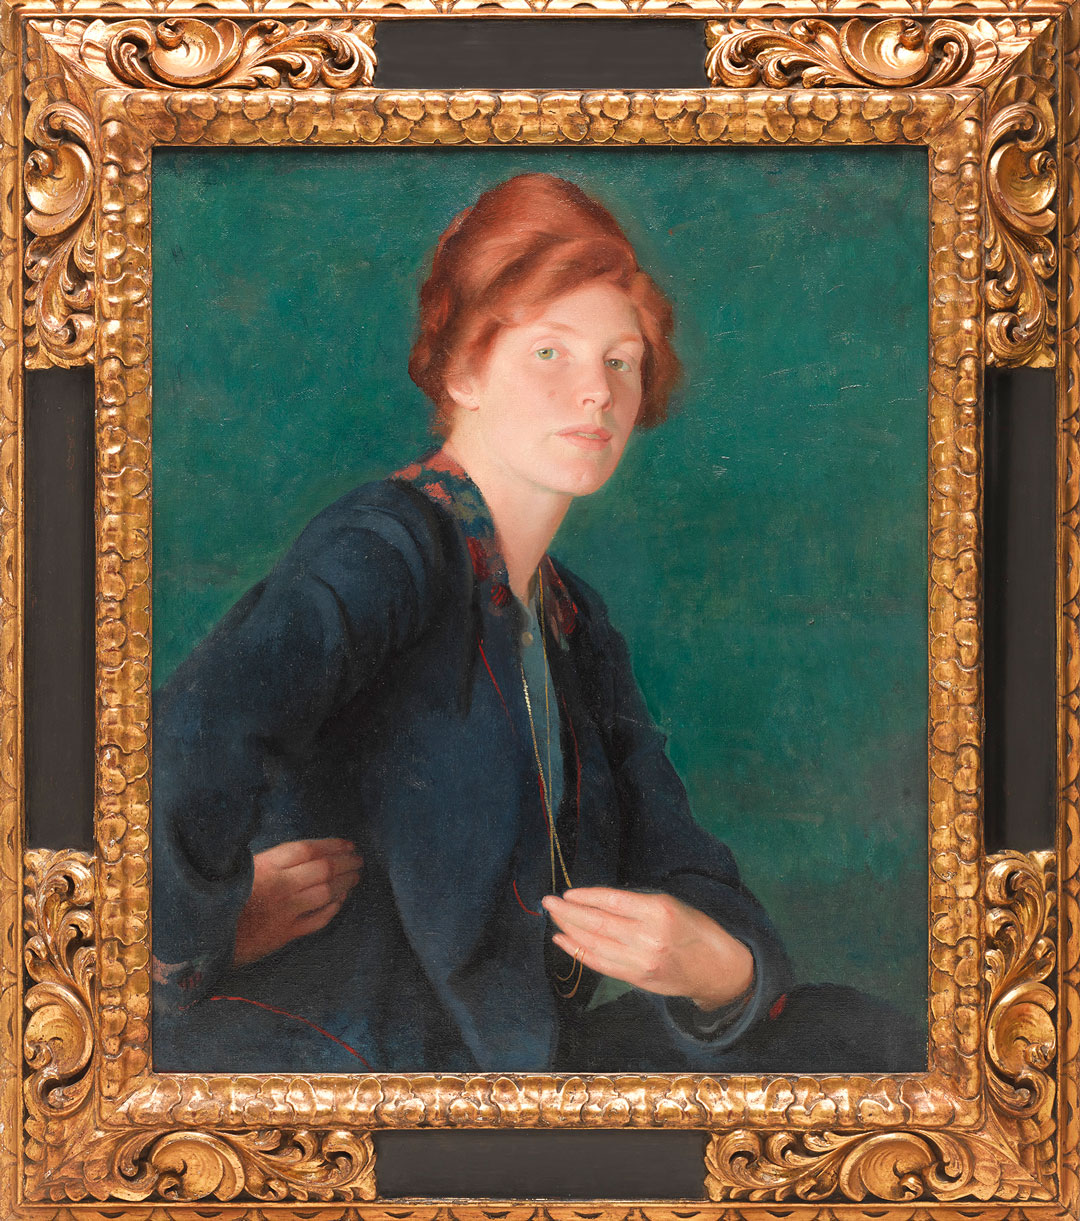 Object of the Week: A Woman with Red  Hair